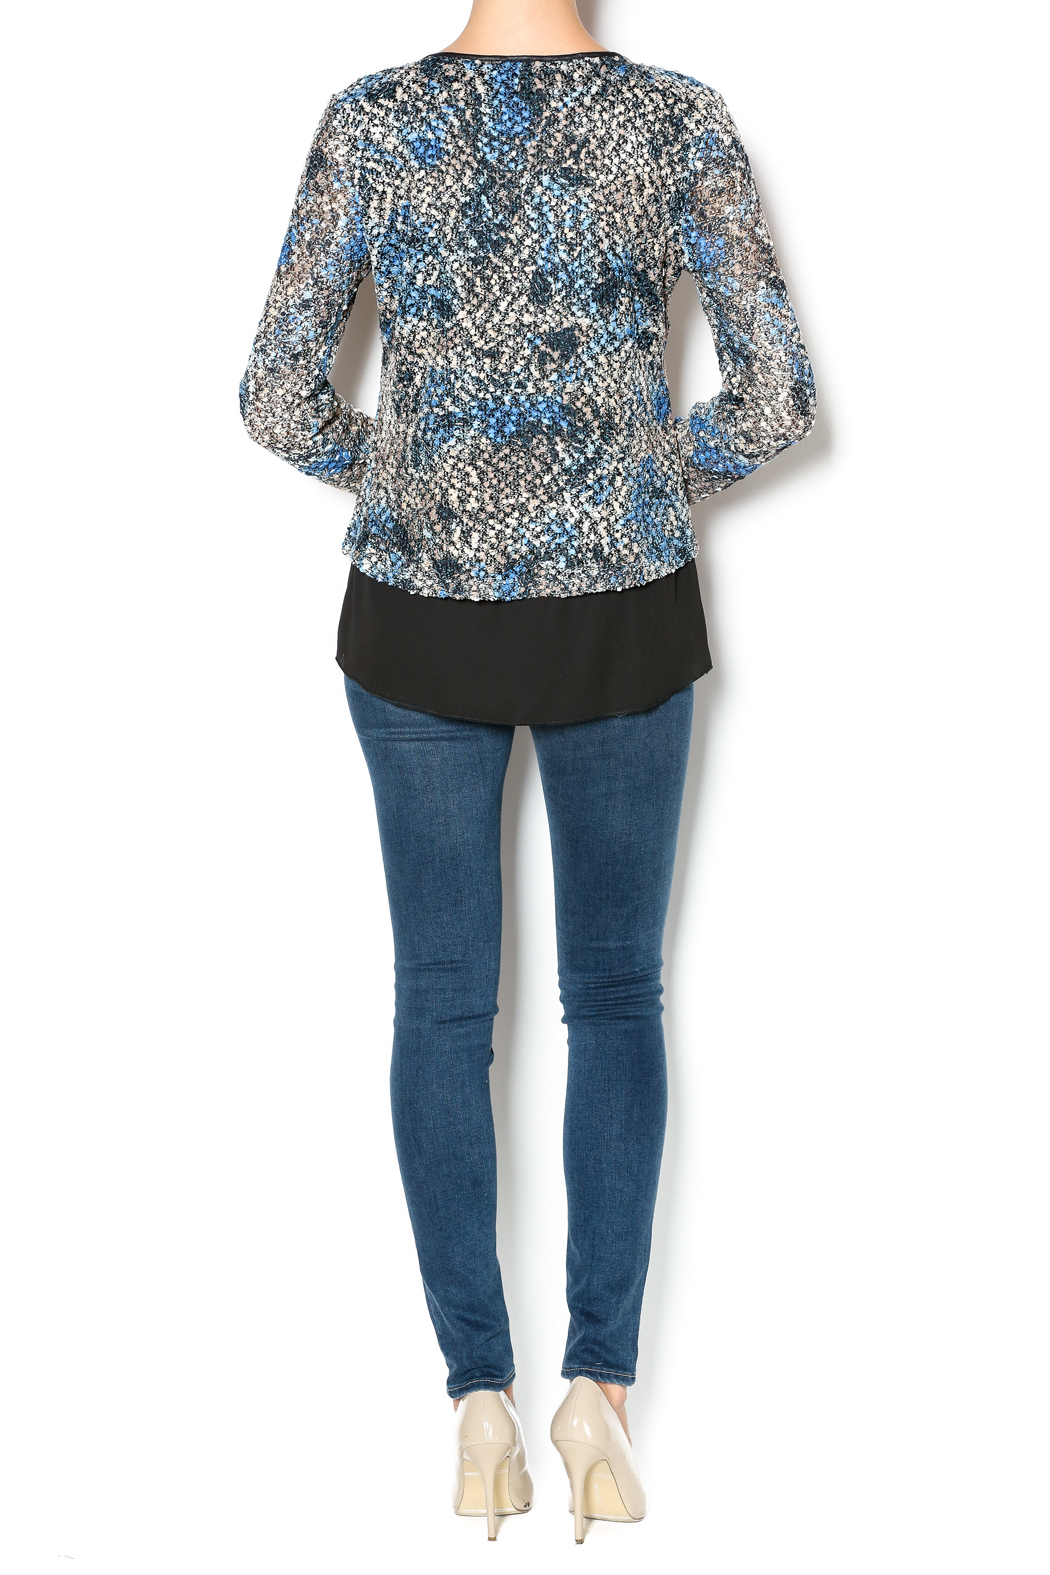 a157e10fb30 Bali Blue Overlay Top from Kentucky by Lee Stephens — Shoptiques